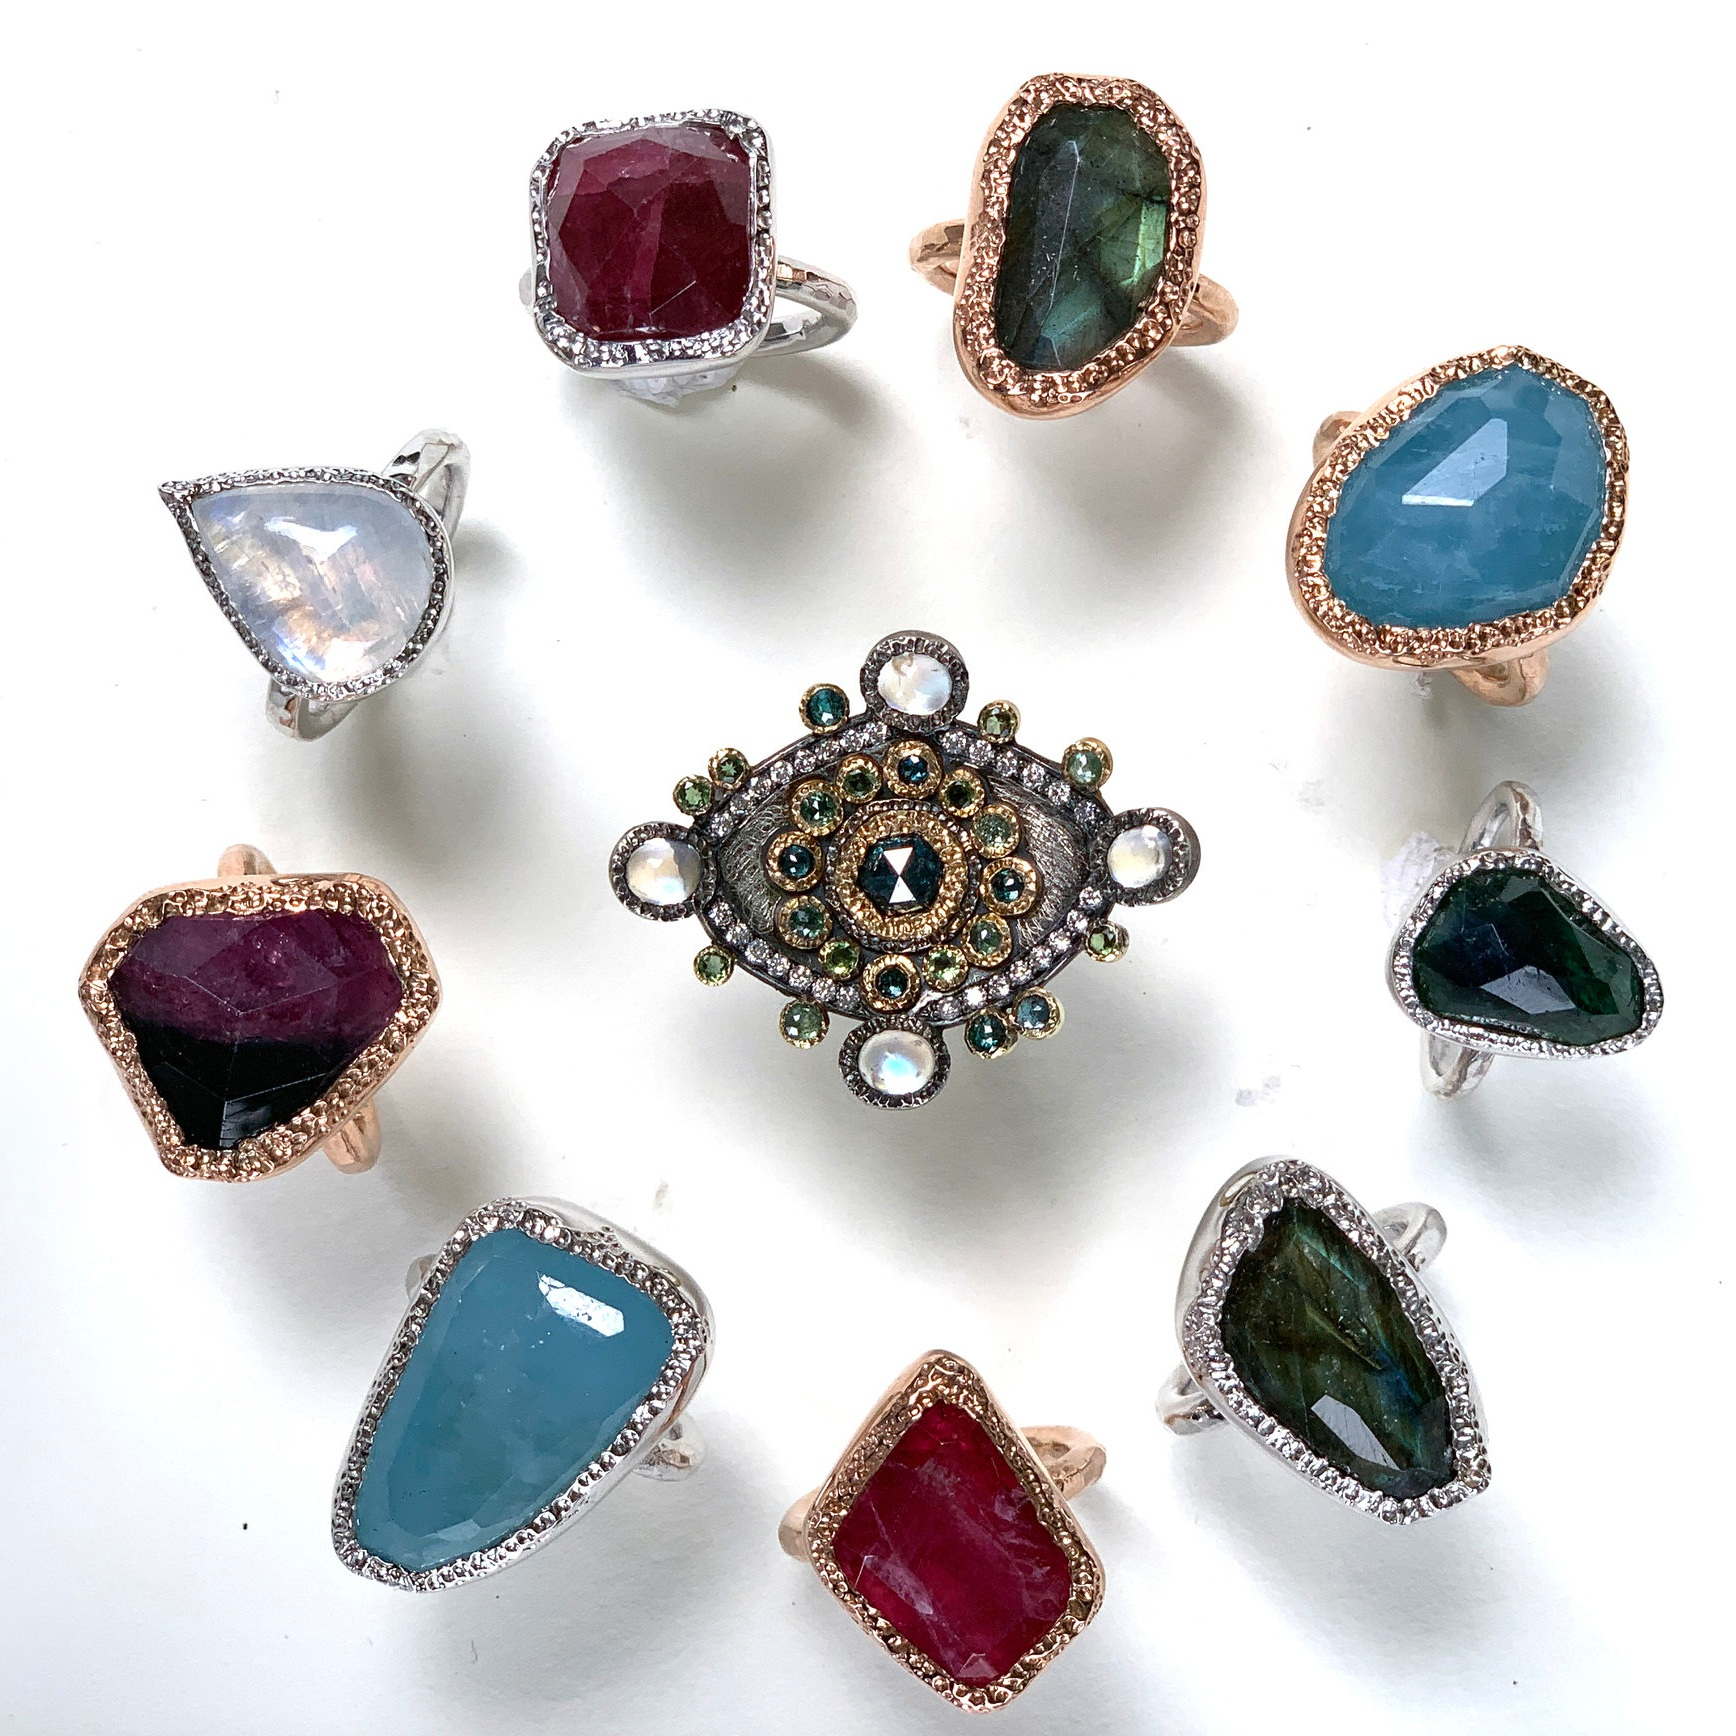 Stone Setting Fancy Bezels - Get a little more creative with your bezels as we learn to make chunky textured bezels, jump ring bezels and fancy shaped bezels